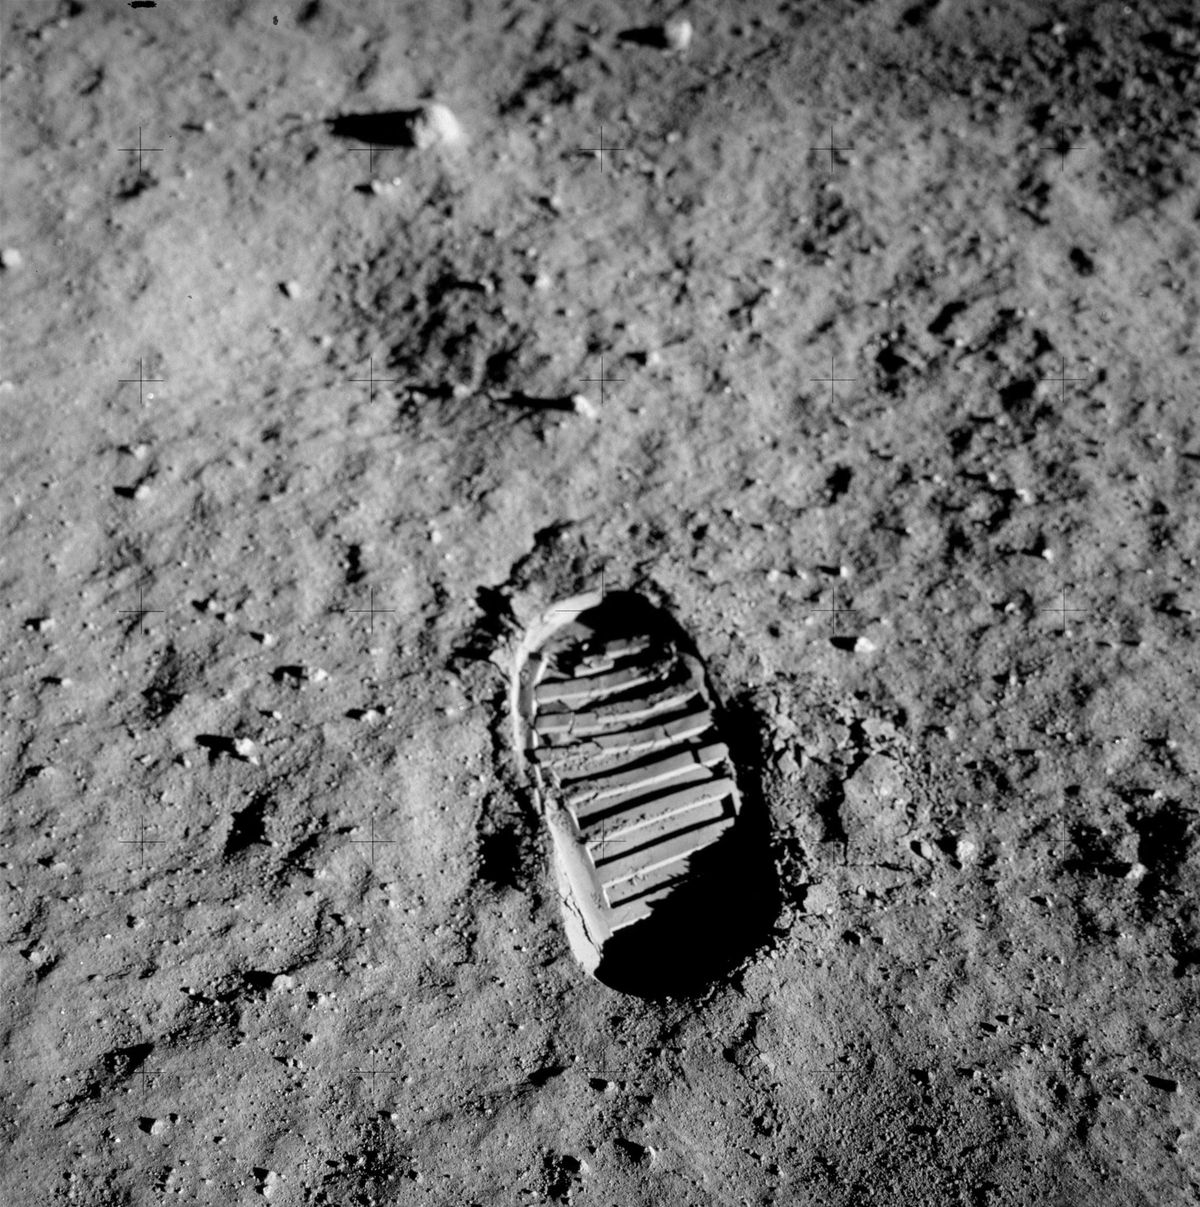 Buzz Aldrin's bootprint, one of the first steps taken on the Moon